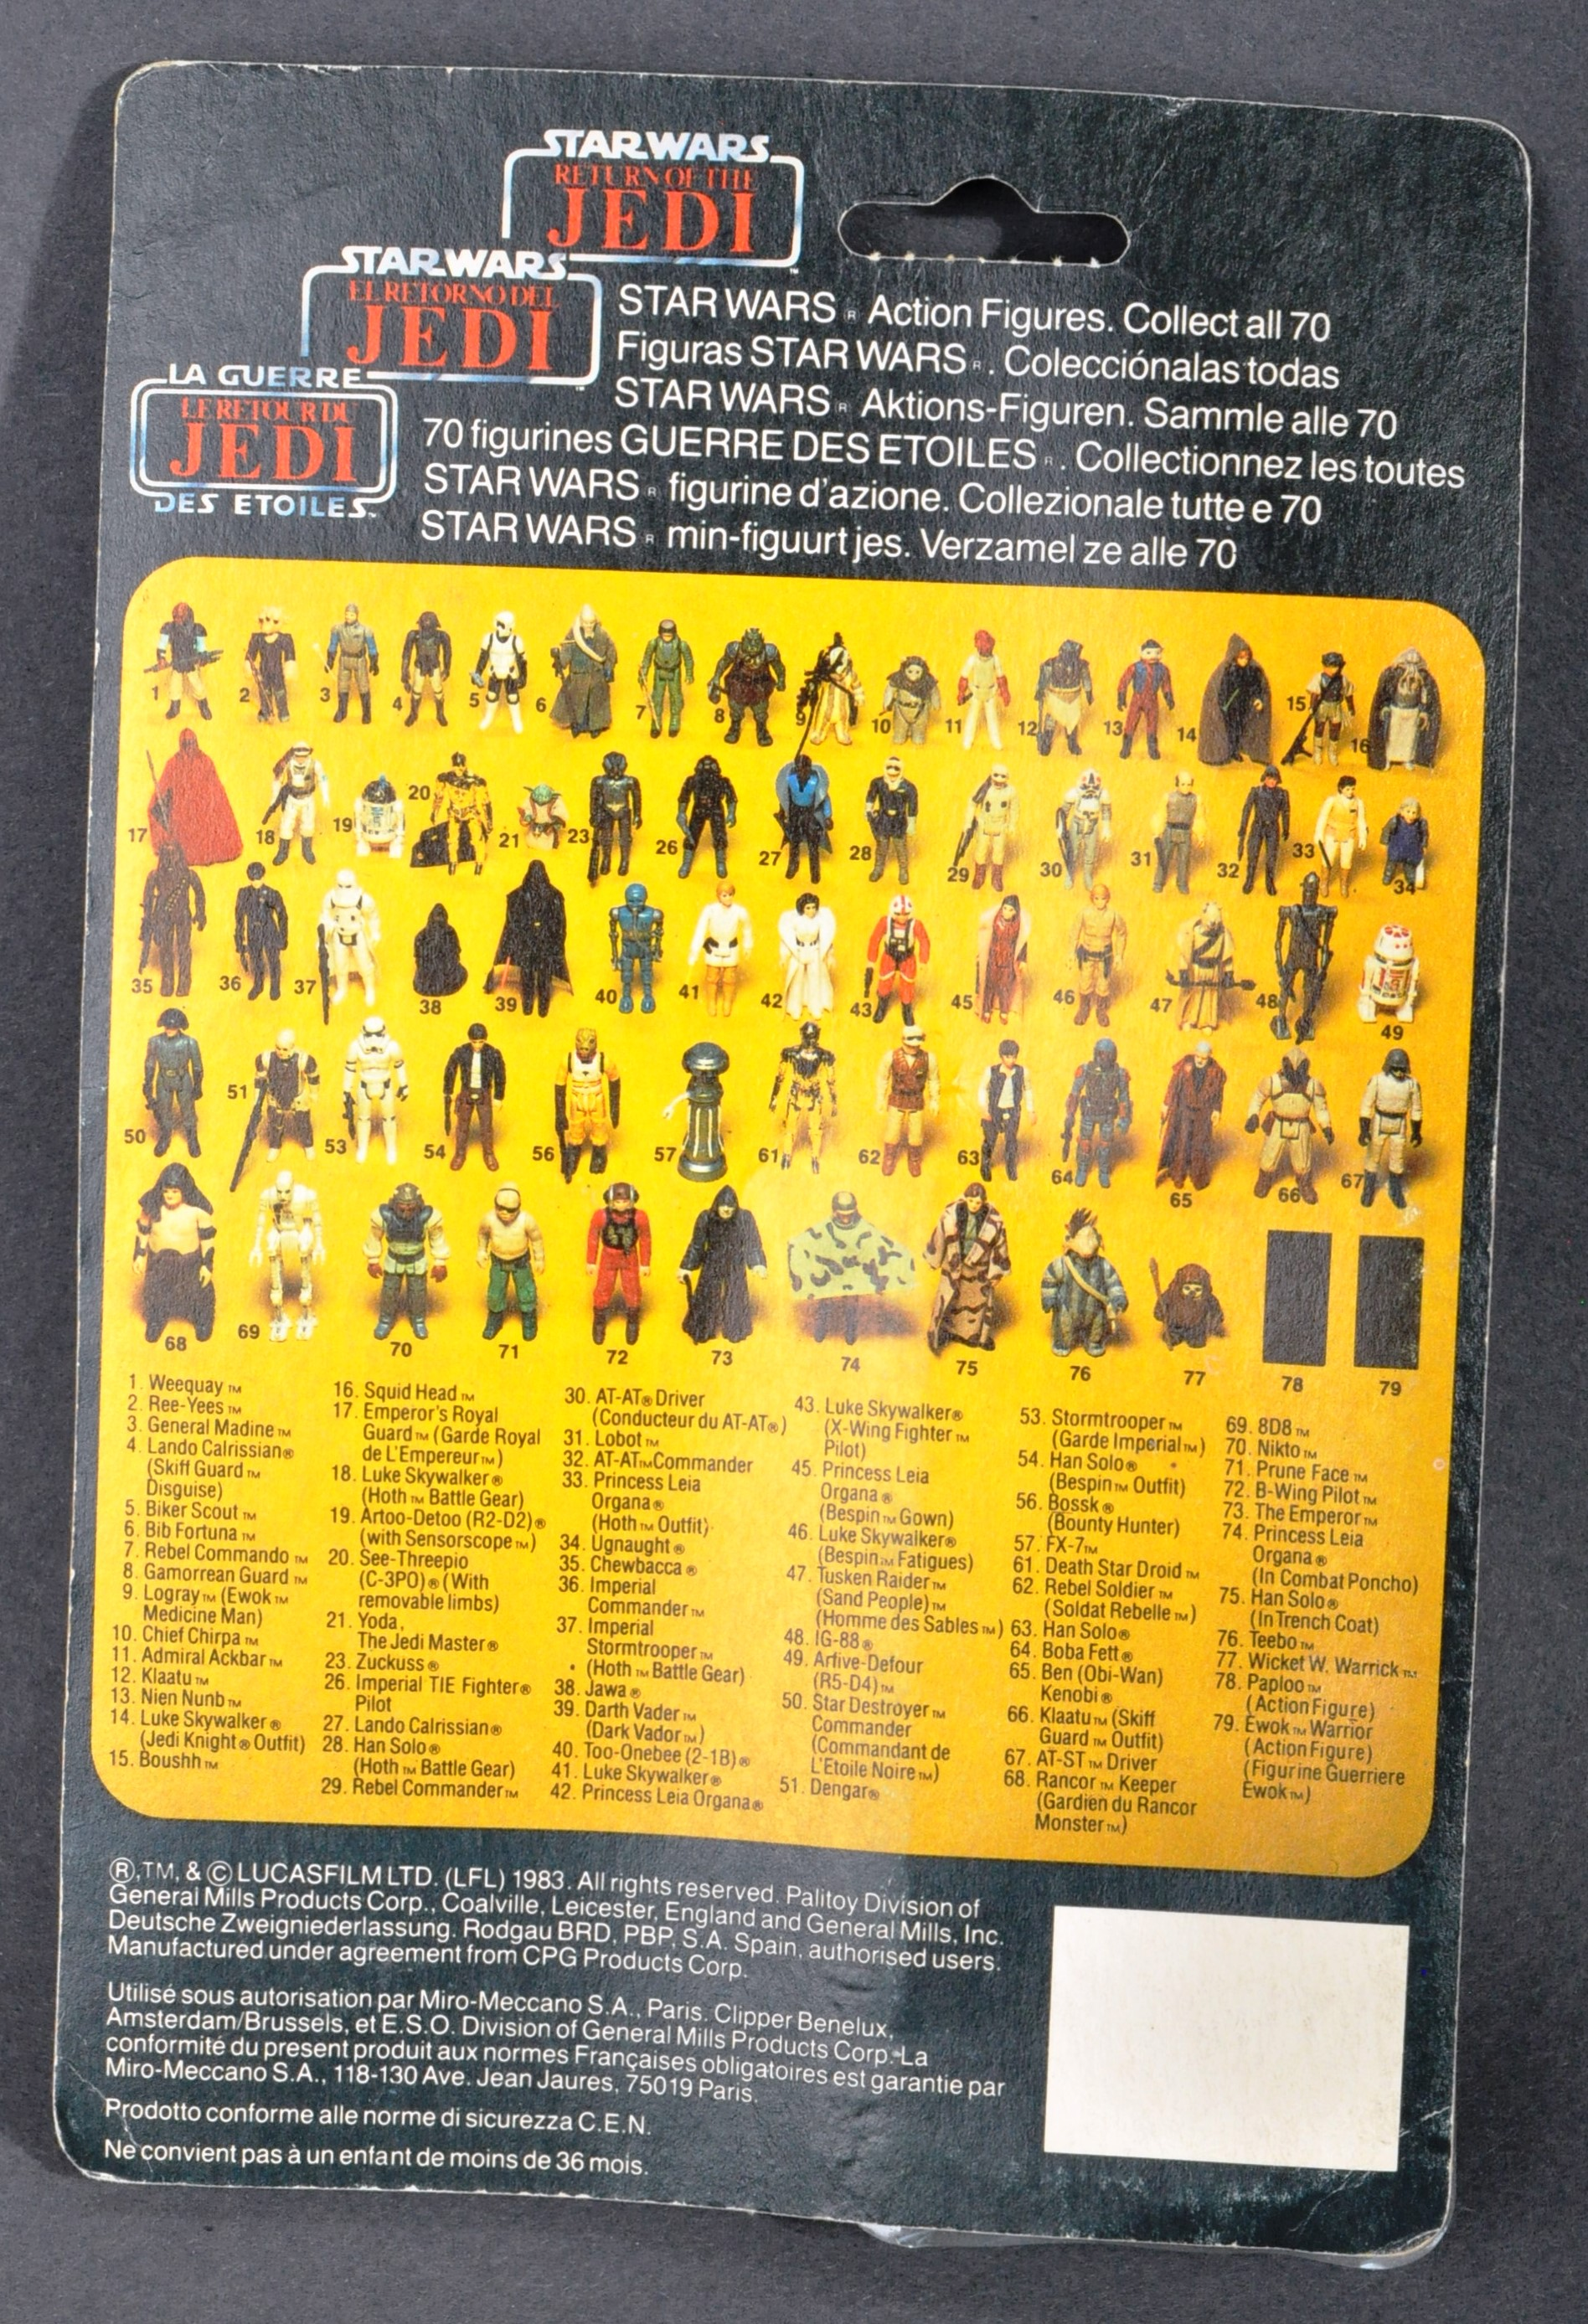 STAR WARS - ORIGINAL PALITOY CARDED MOC ACTION FIGURE - Image 2 of 6